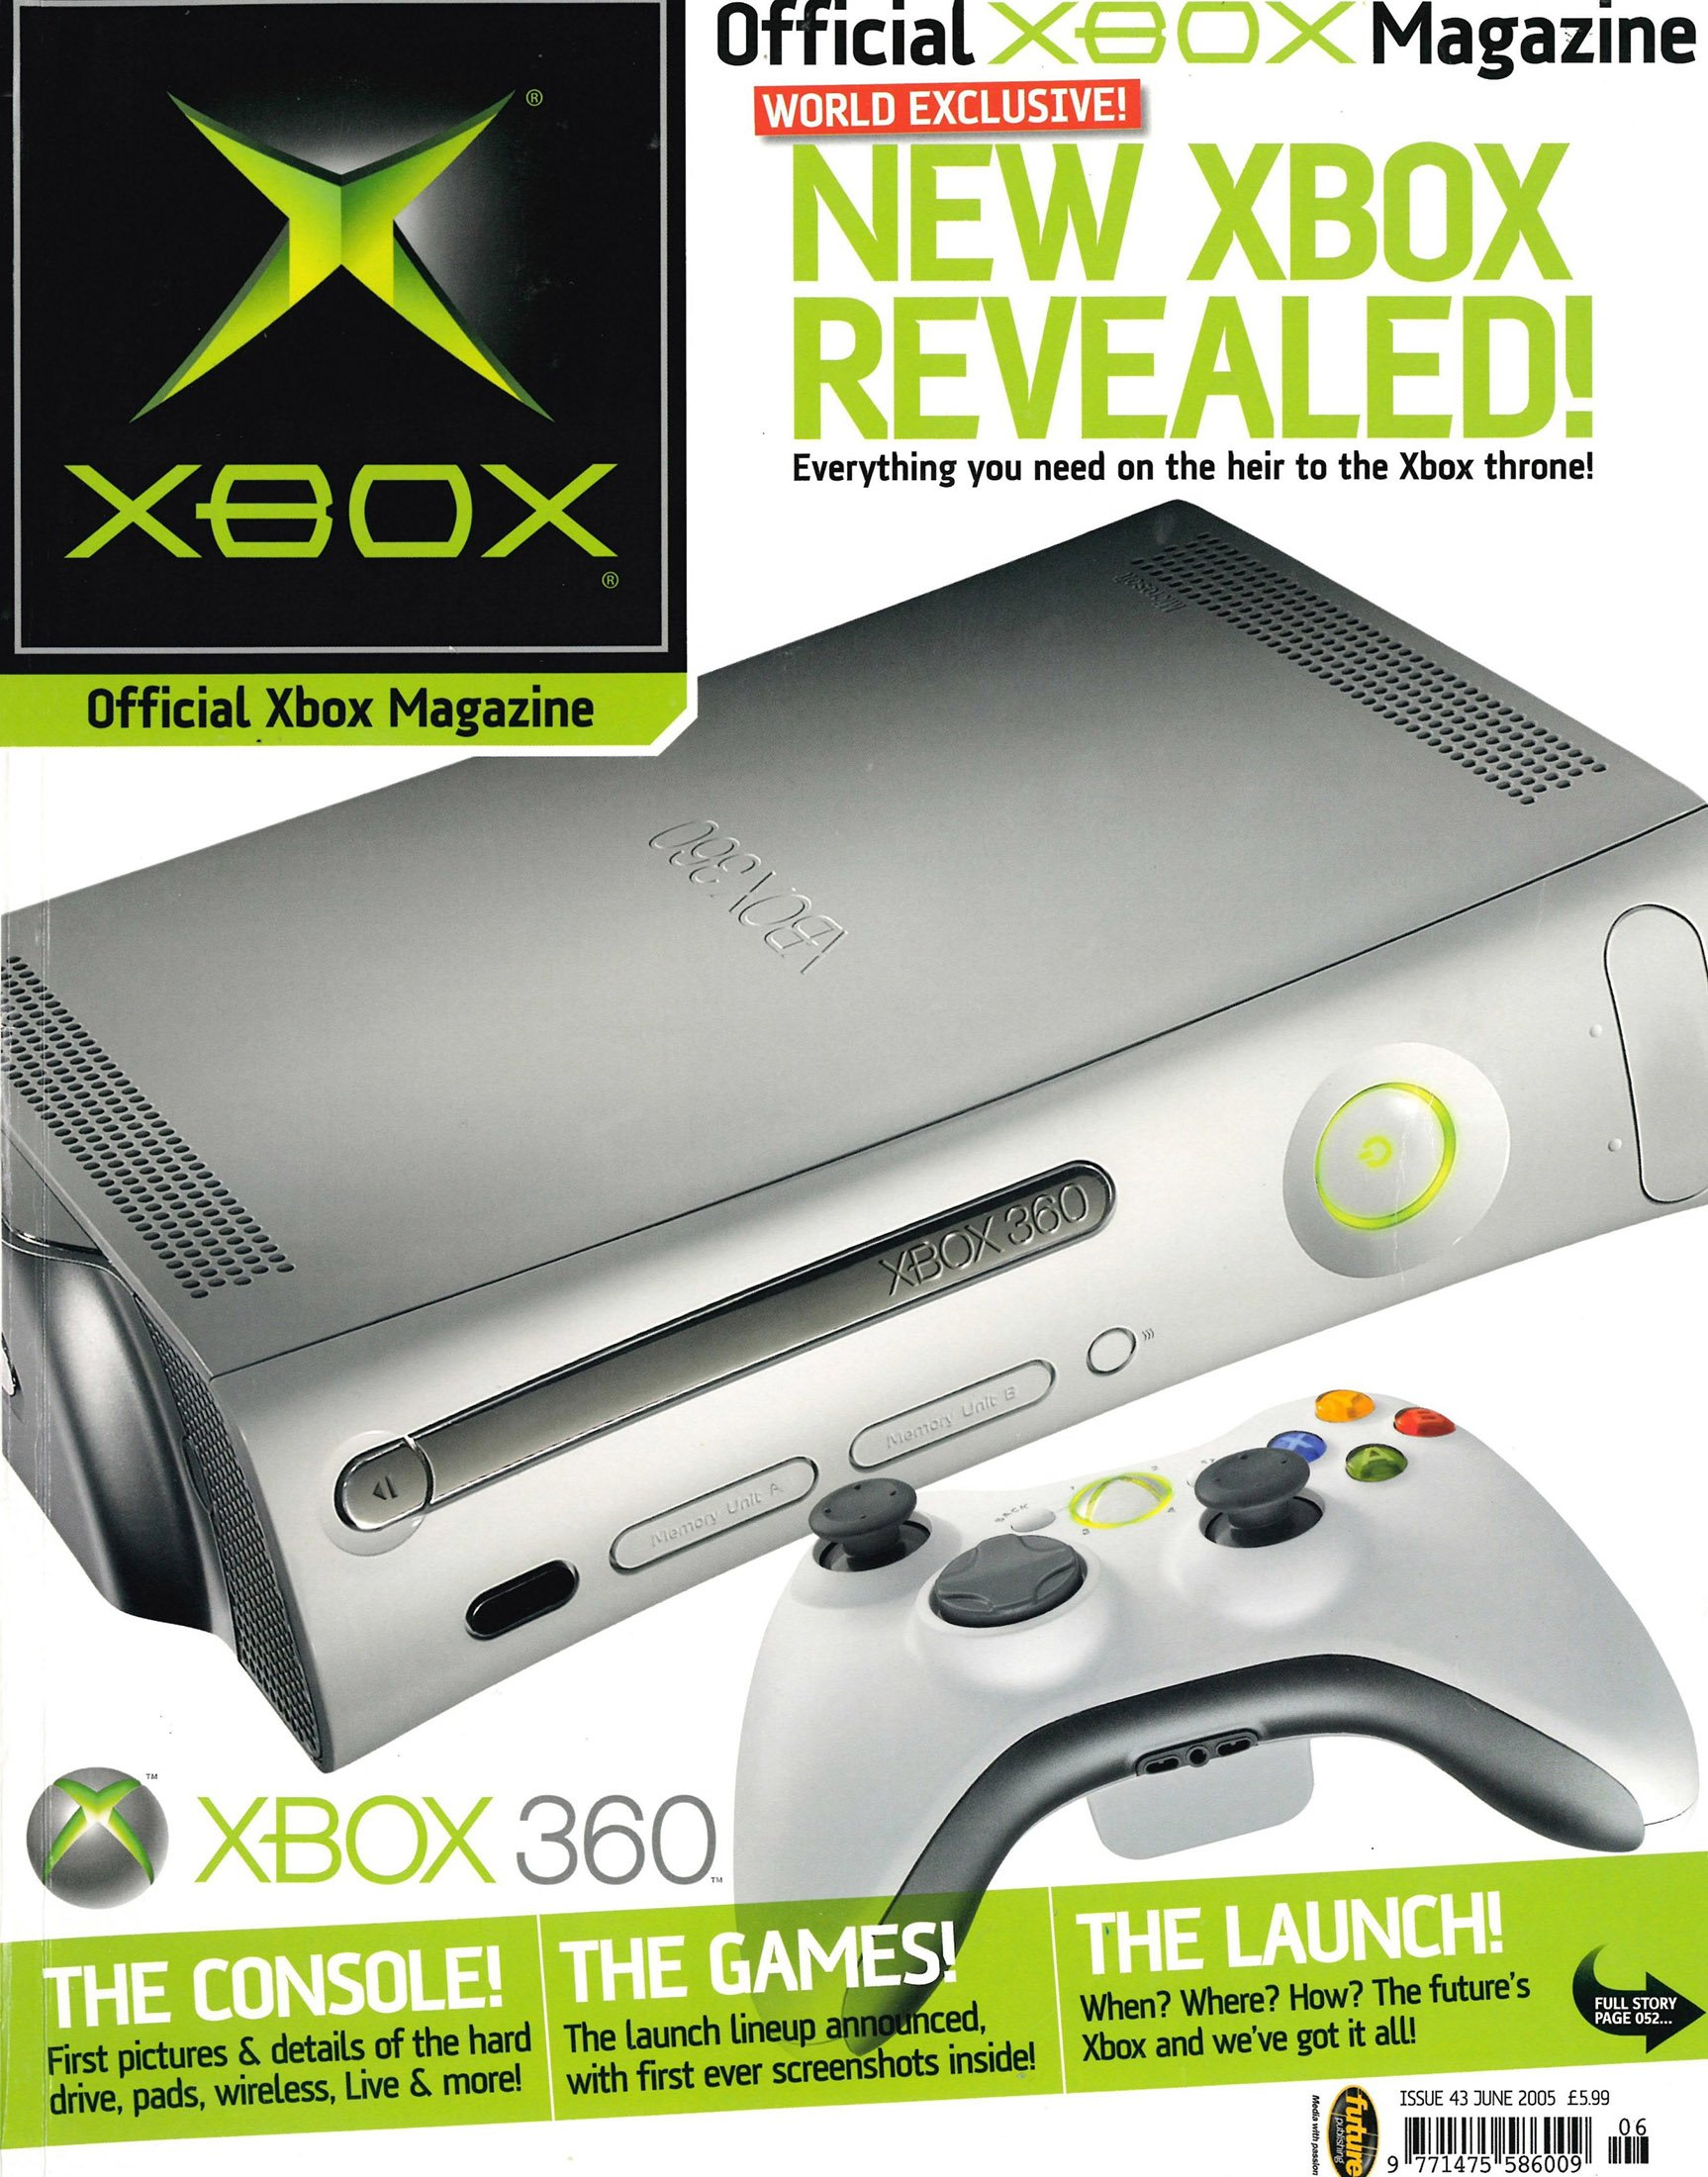 Official UK Xbox Magazine Issue 43 - June 2005